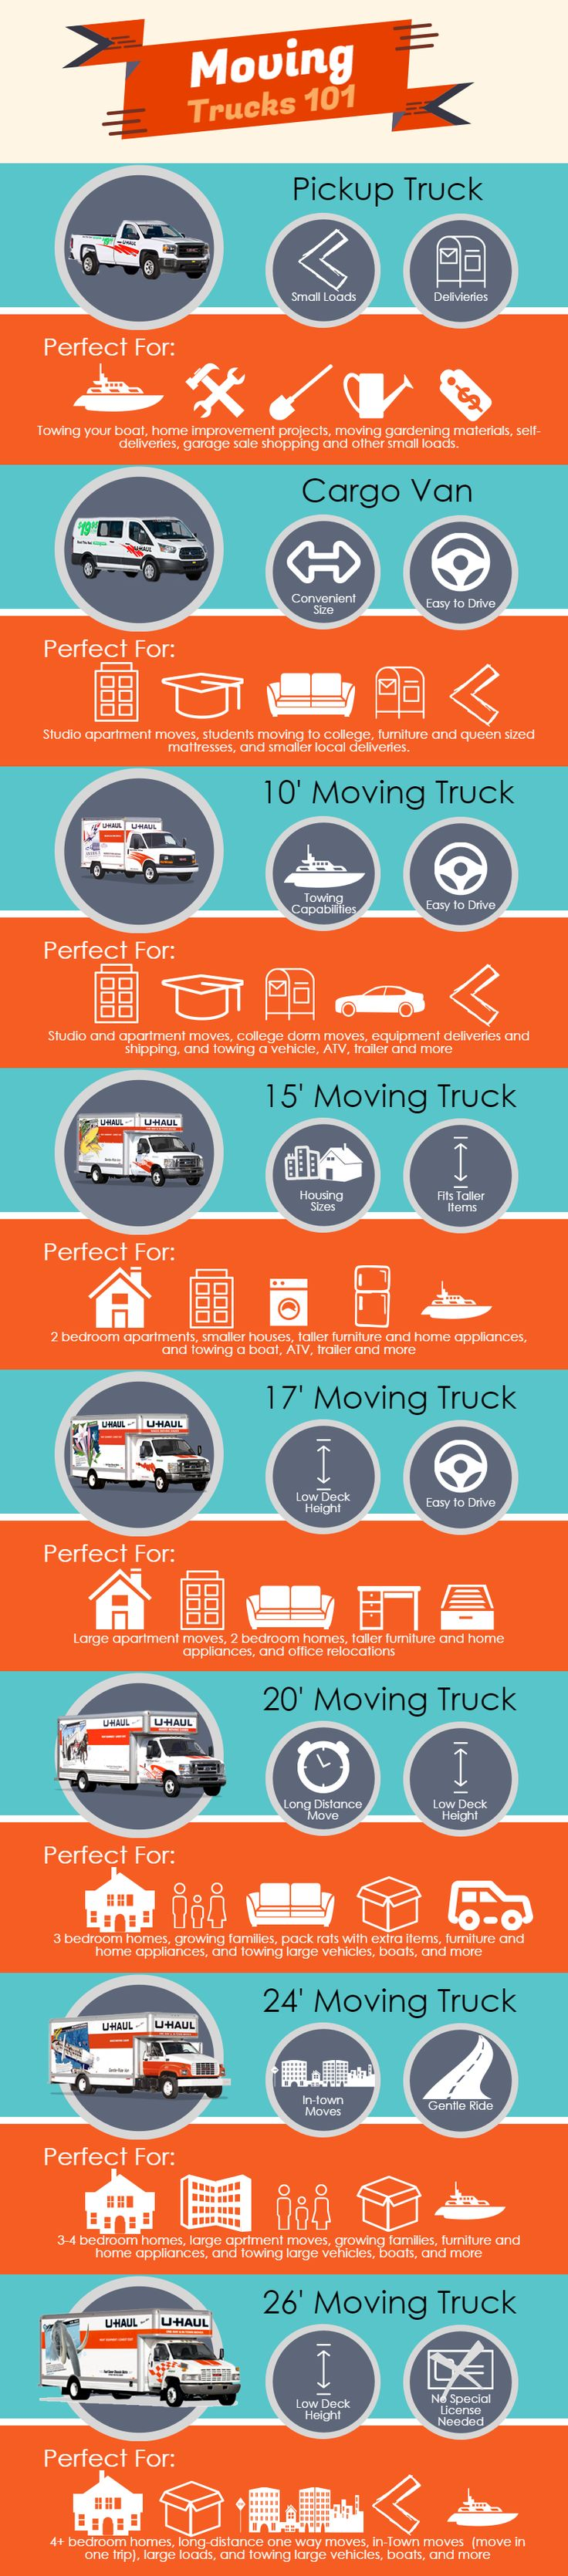 Choosing the right size moving truck rental is one of the most critical aspects to having a safe and pleasant DIY move. Fin out which moving truck is perfect for your move, or project! | Planning For A Move